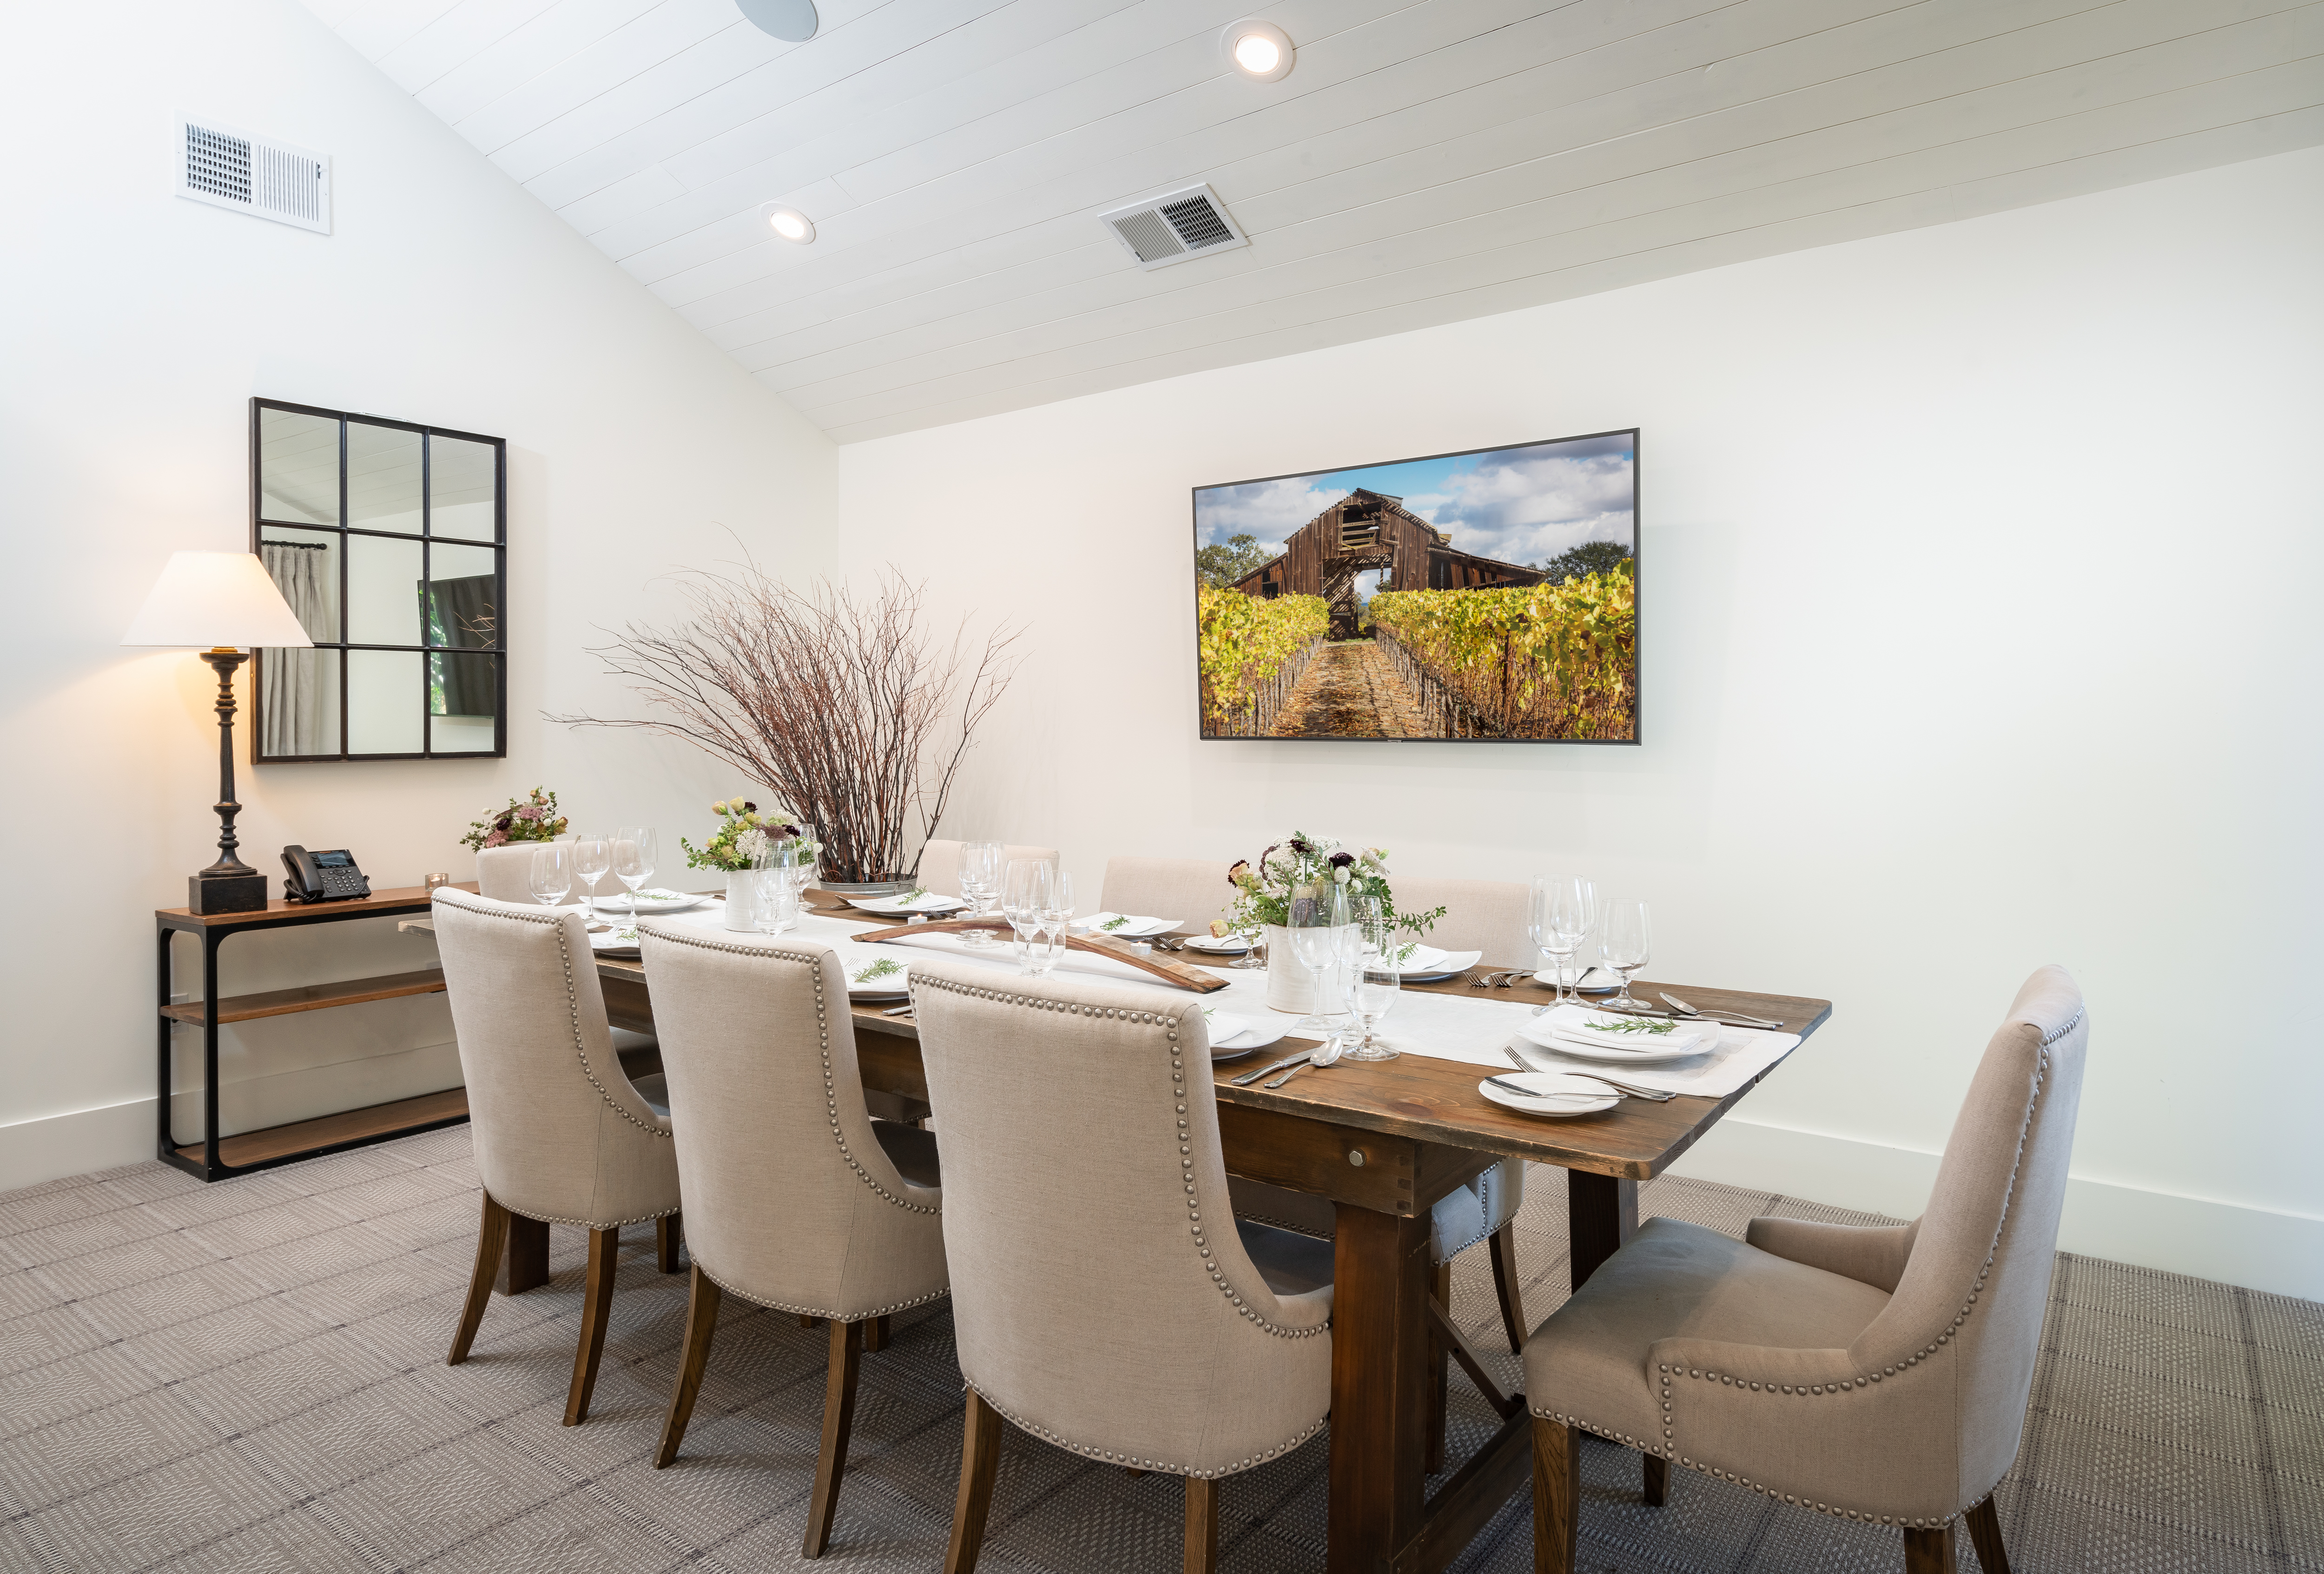 farmhouse inn grange dinner table with cream chairs and dinner place settings Inset